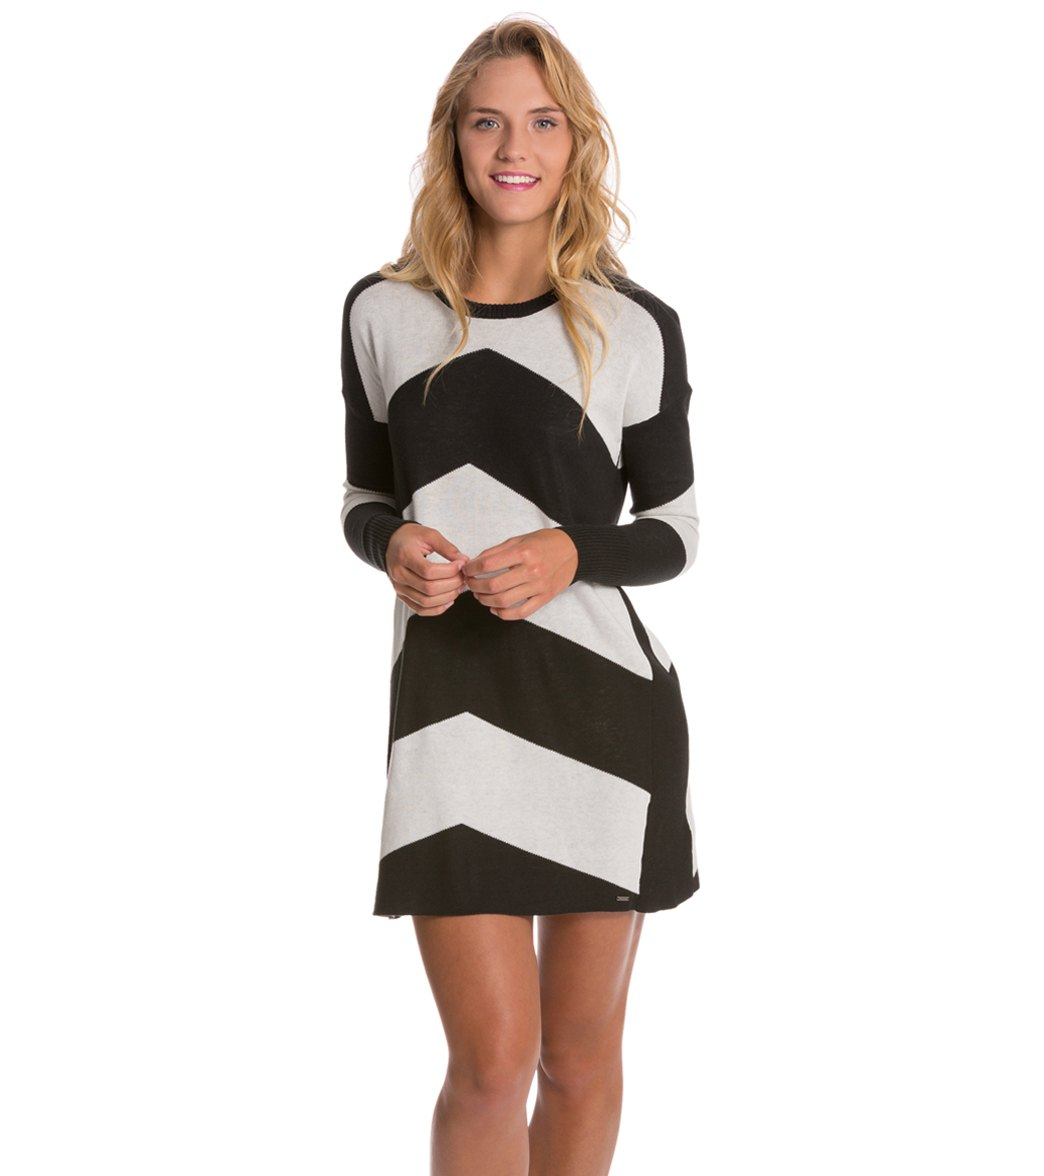 95470720fb4 Volcom Twisted Sweater Dress at SwimOutlet.com - Free Shipping